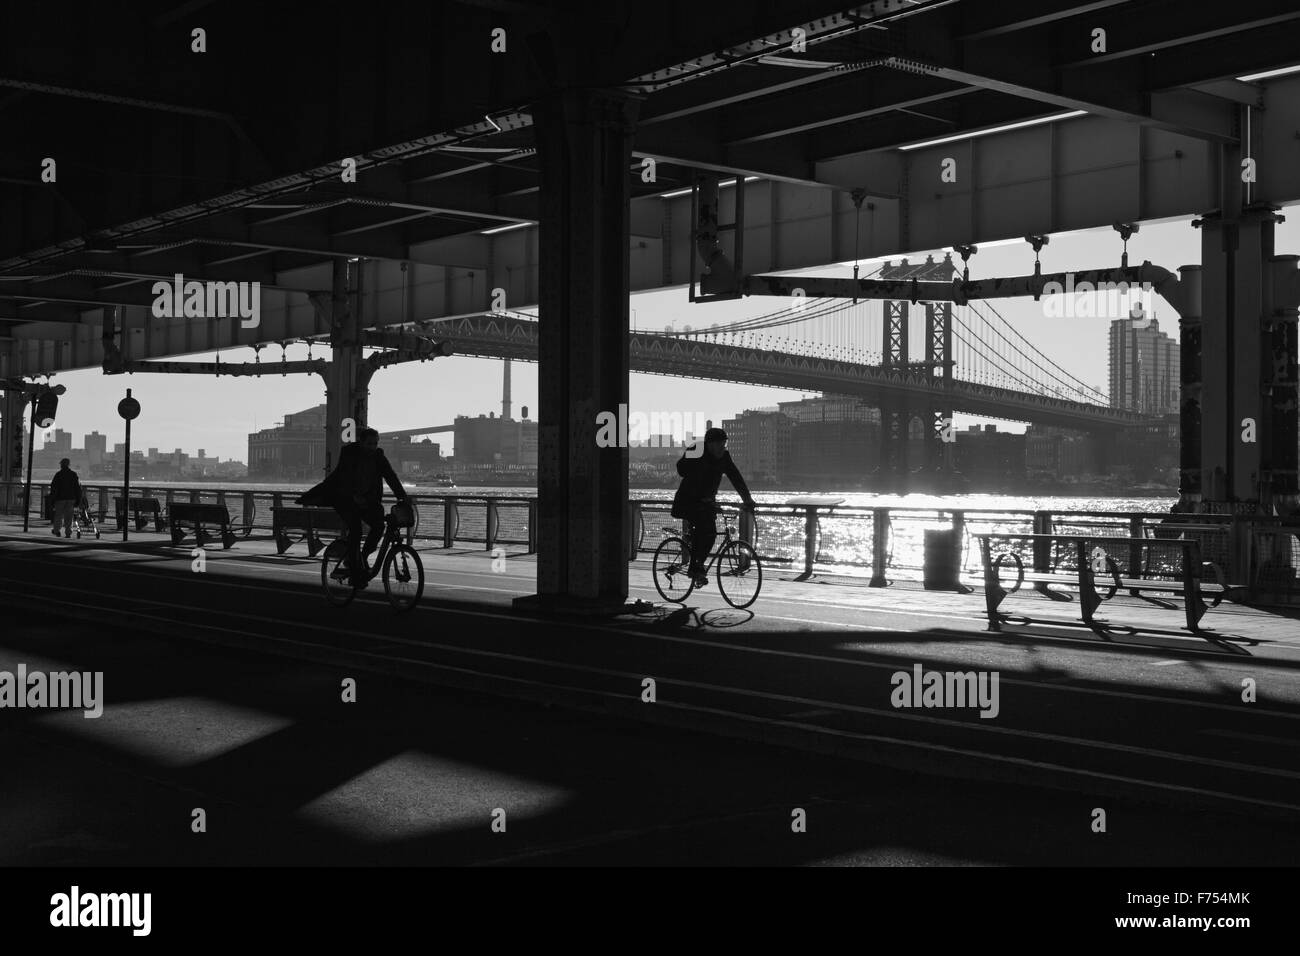 Two men cycle and another walks along the East River Esplanade, New York - Stock Image